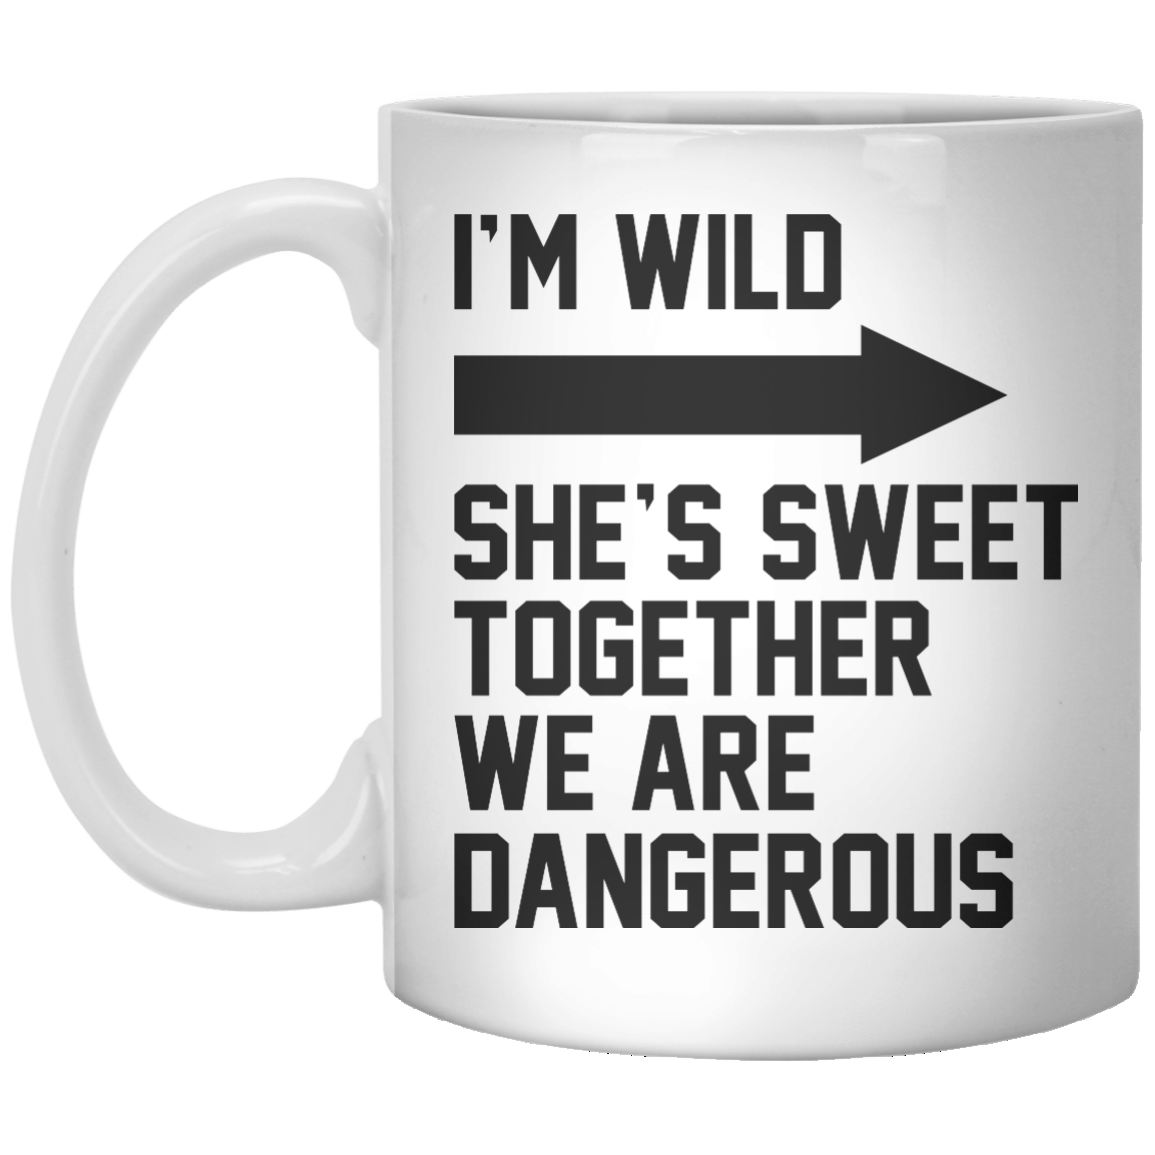 I'M Wild She's Sweet Together We Are Dangerous - Shirtoopia